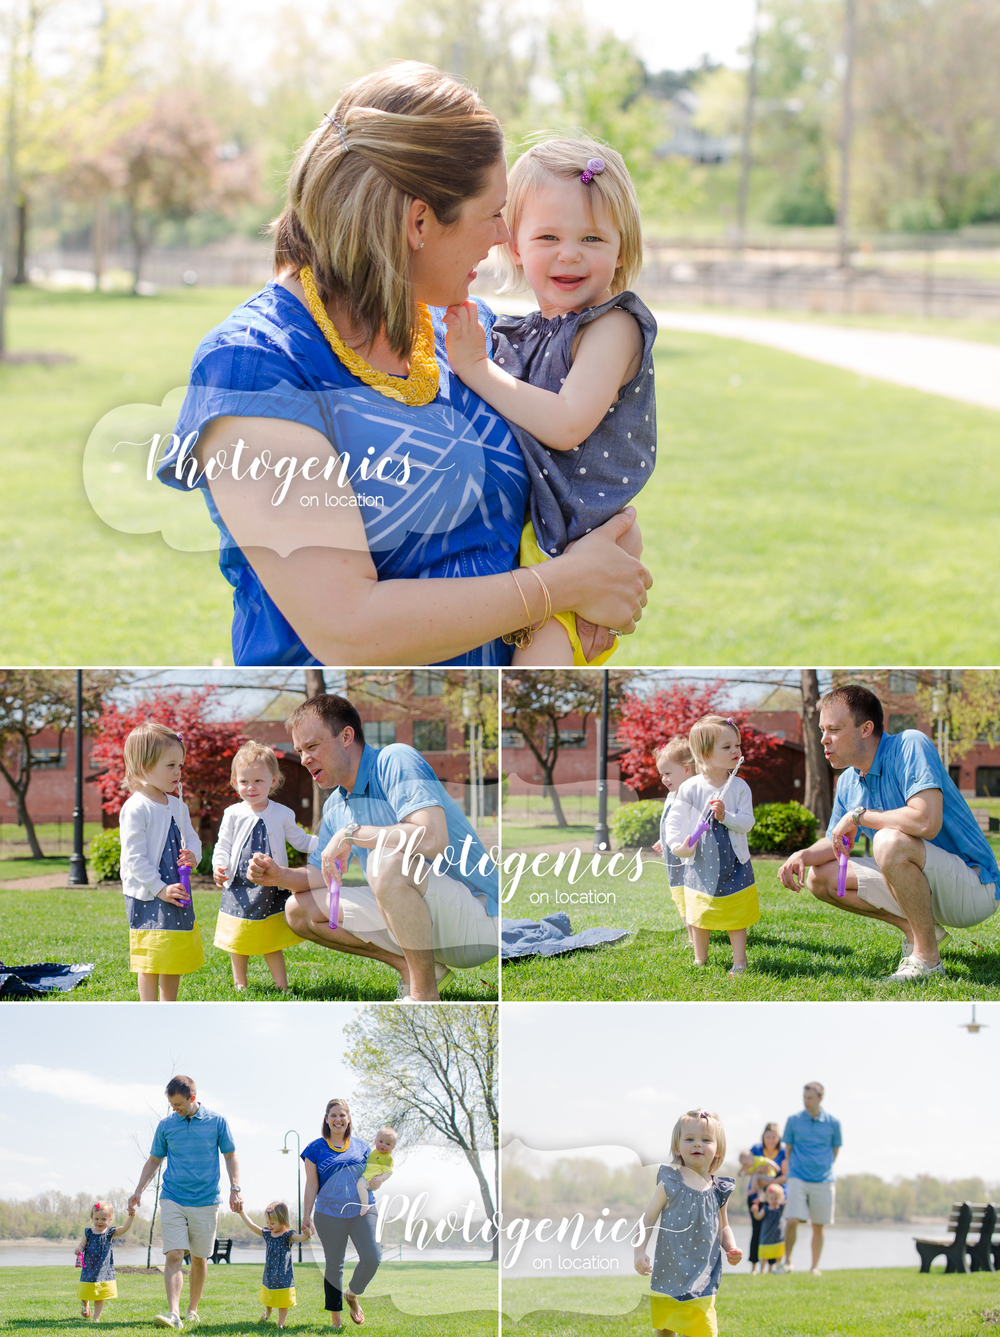 spring_photography_twins_family_sunny_three_kids 4.jpg